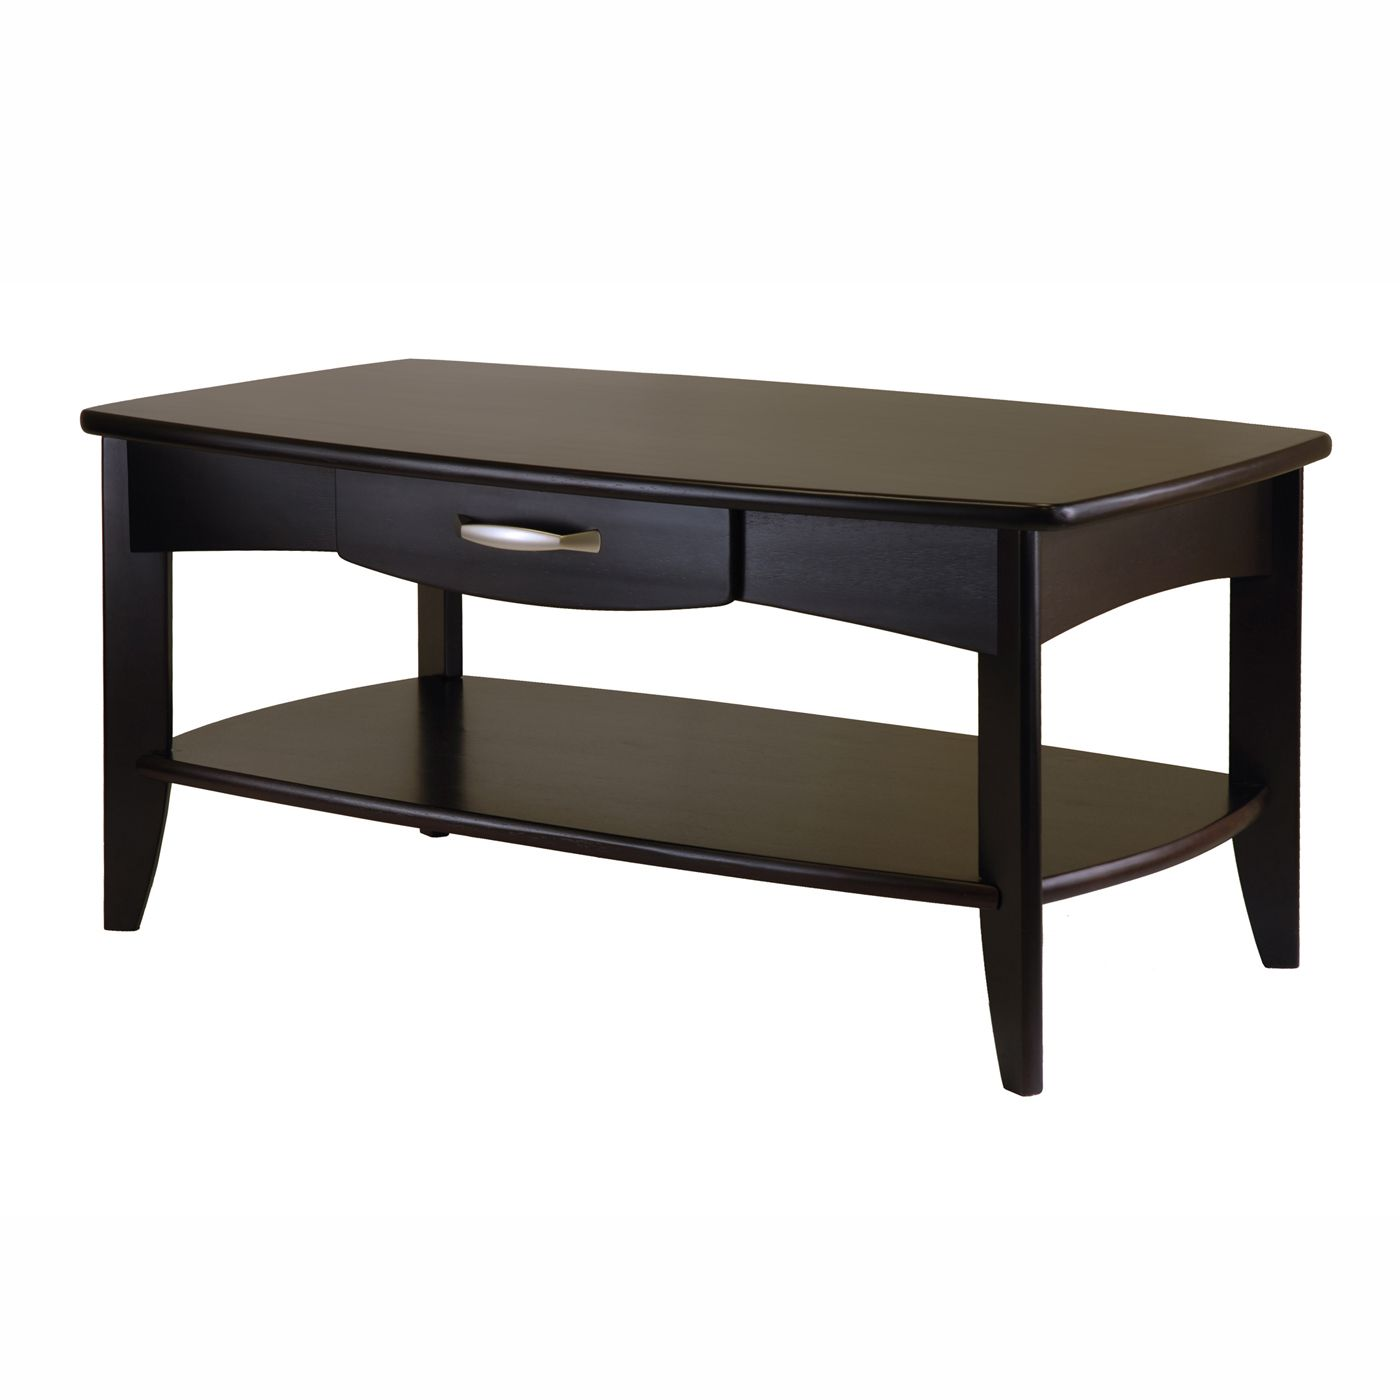 Shop Winsome Wood Danica Coffee Table at Lowe s Canada Find